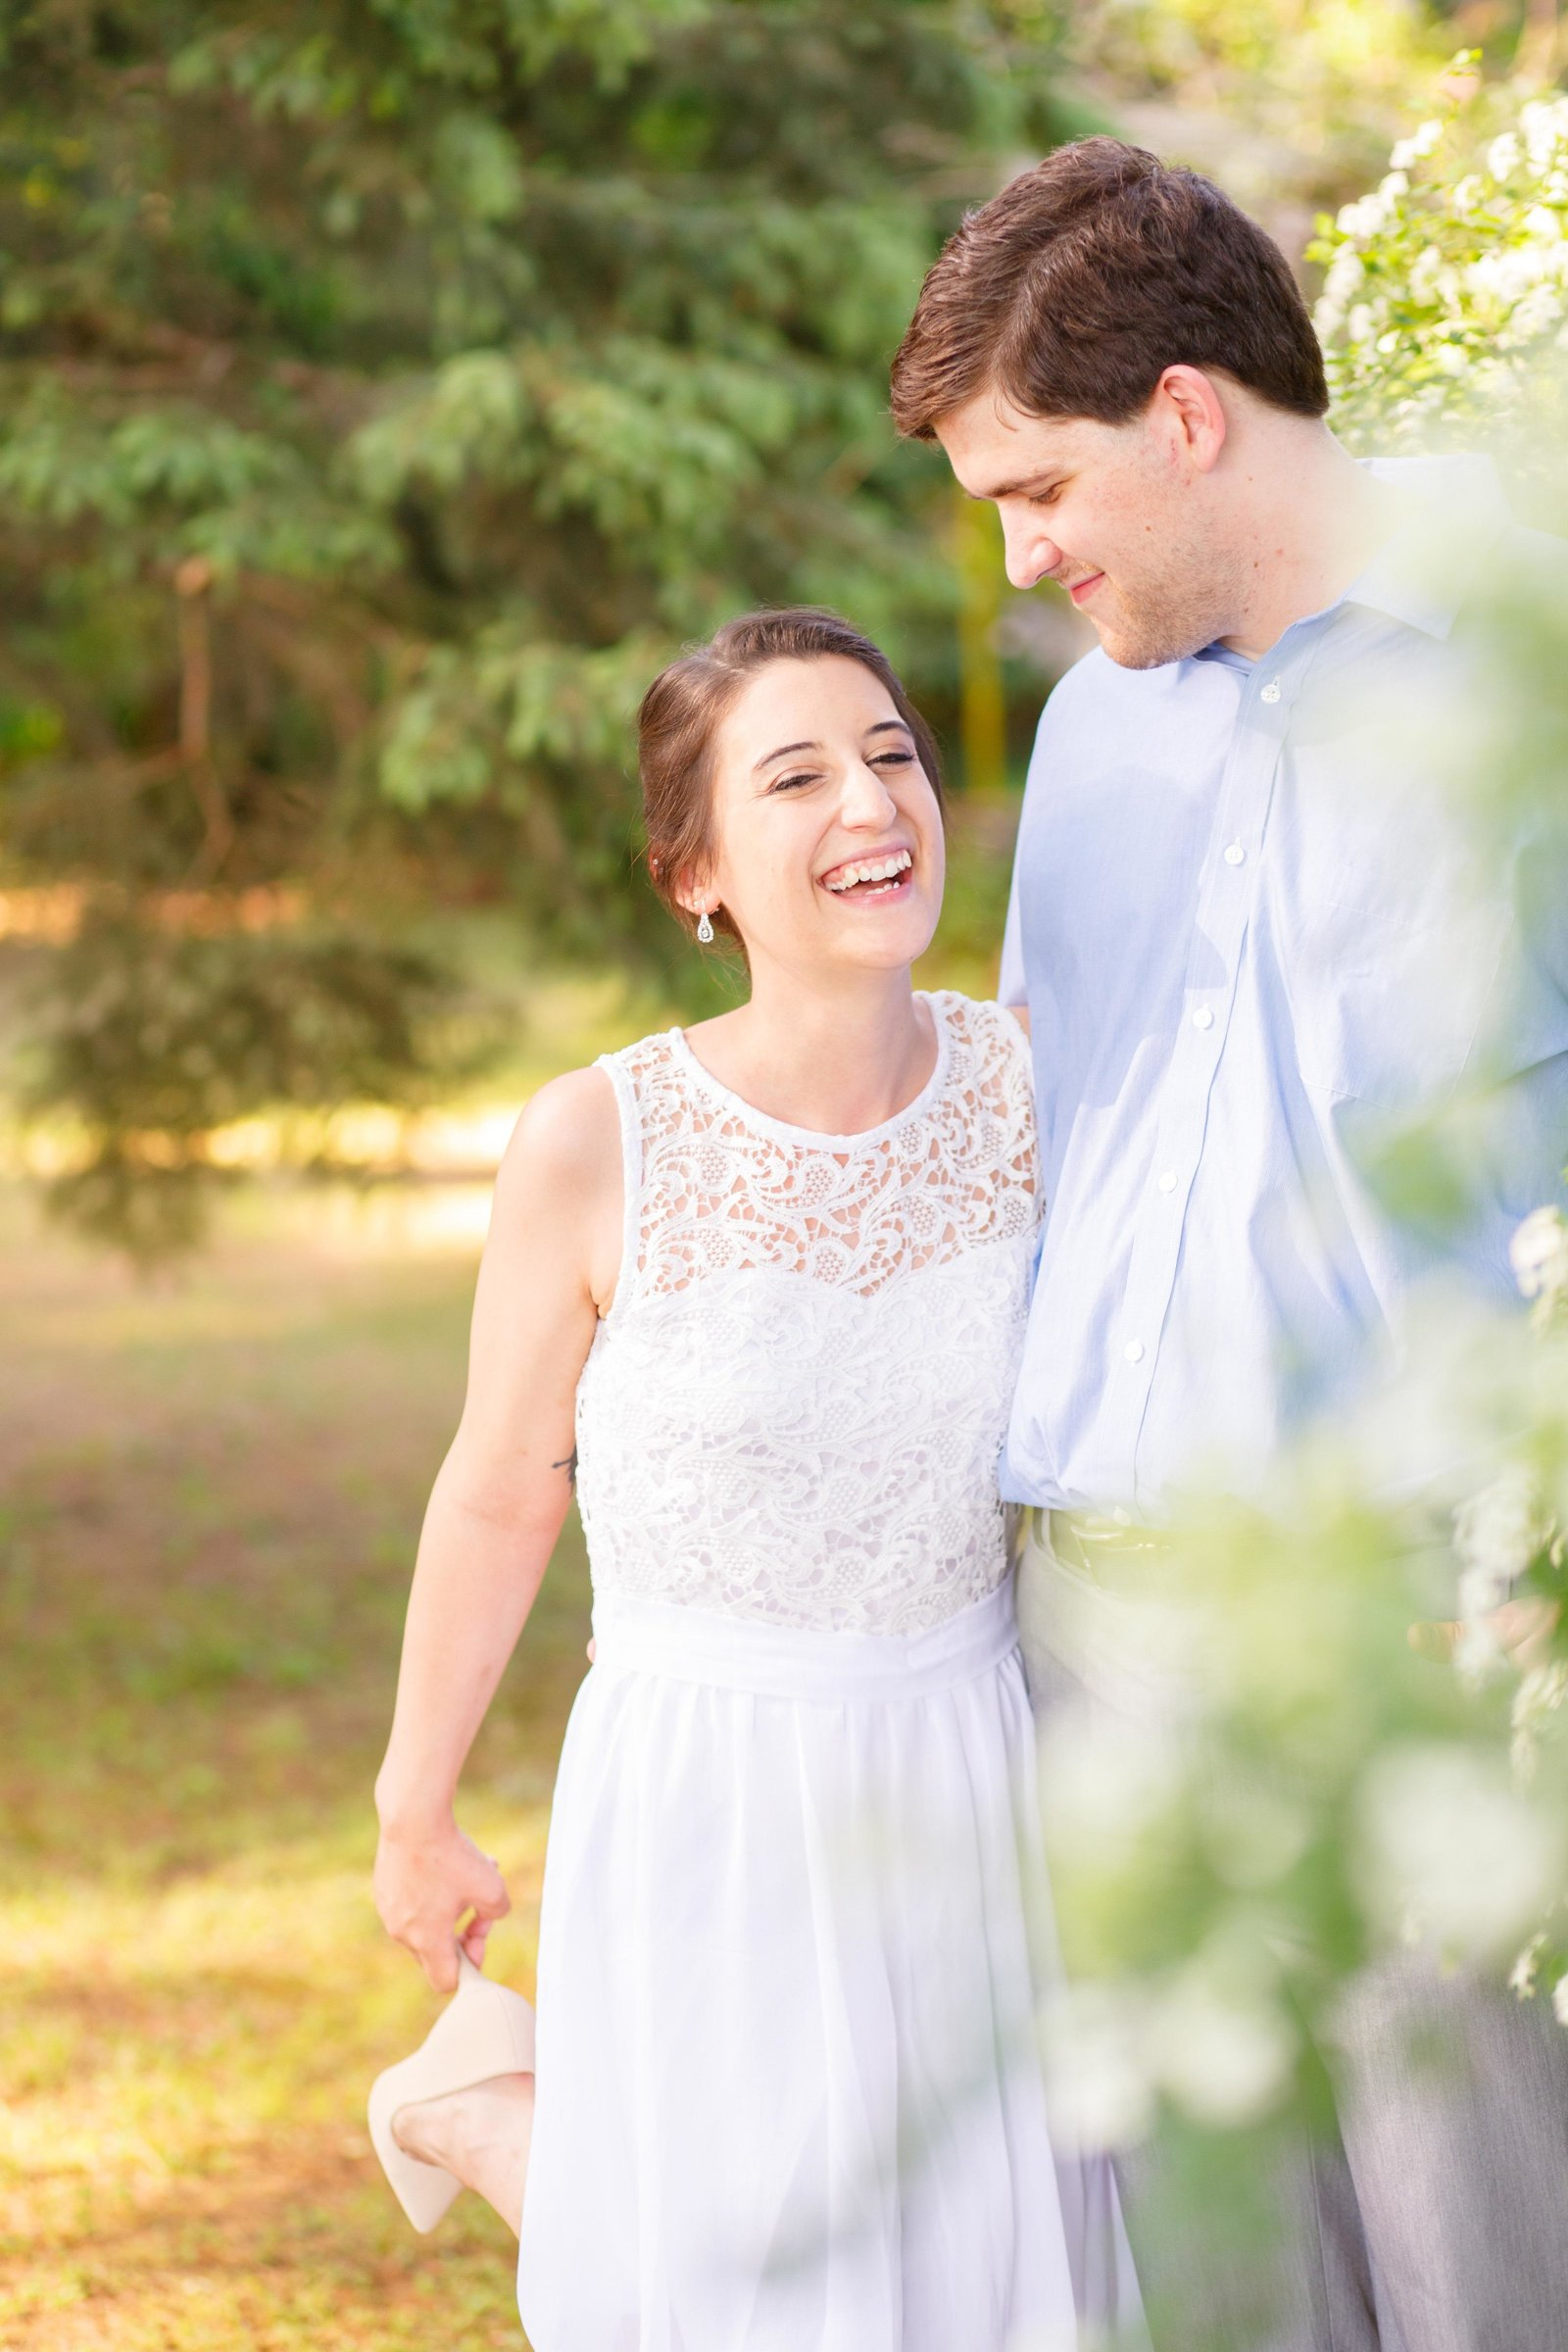 authenticweddingphotography-11